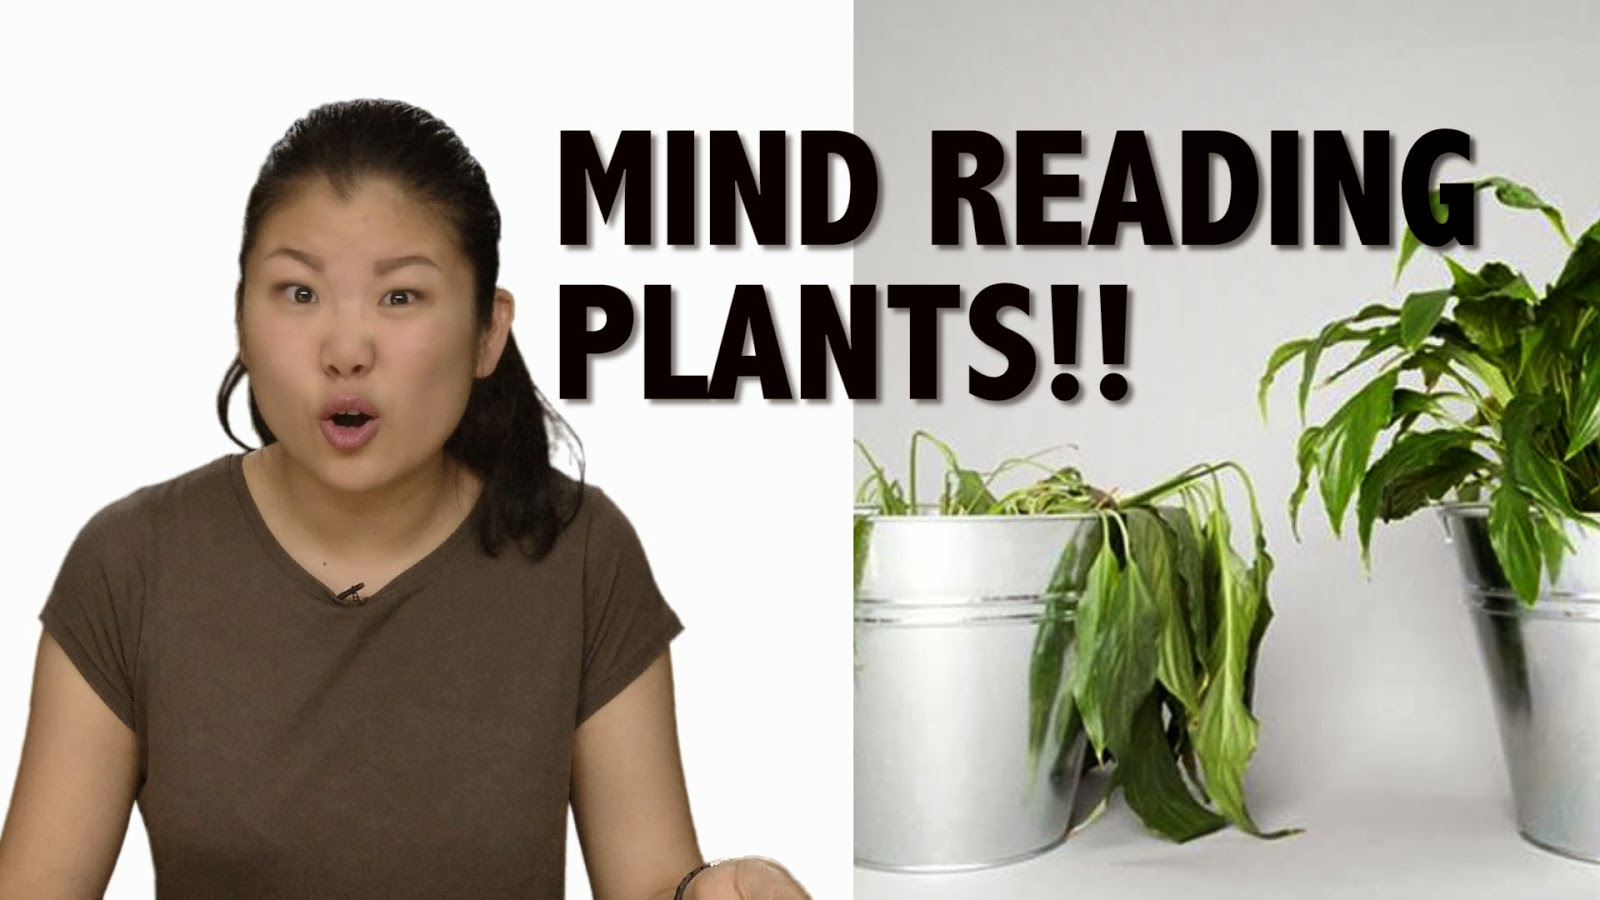 Your Houseplants Can Think, Talk, Read Your Mind: New Research Adds Evidence